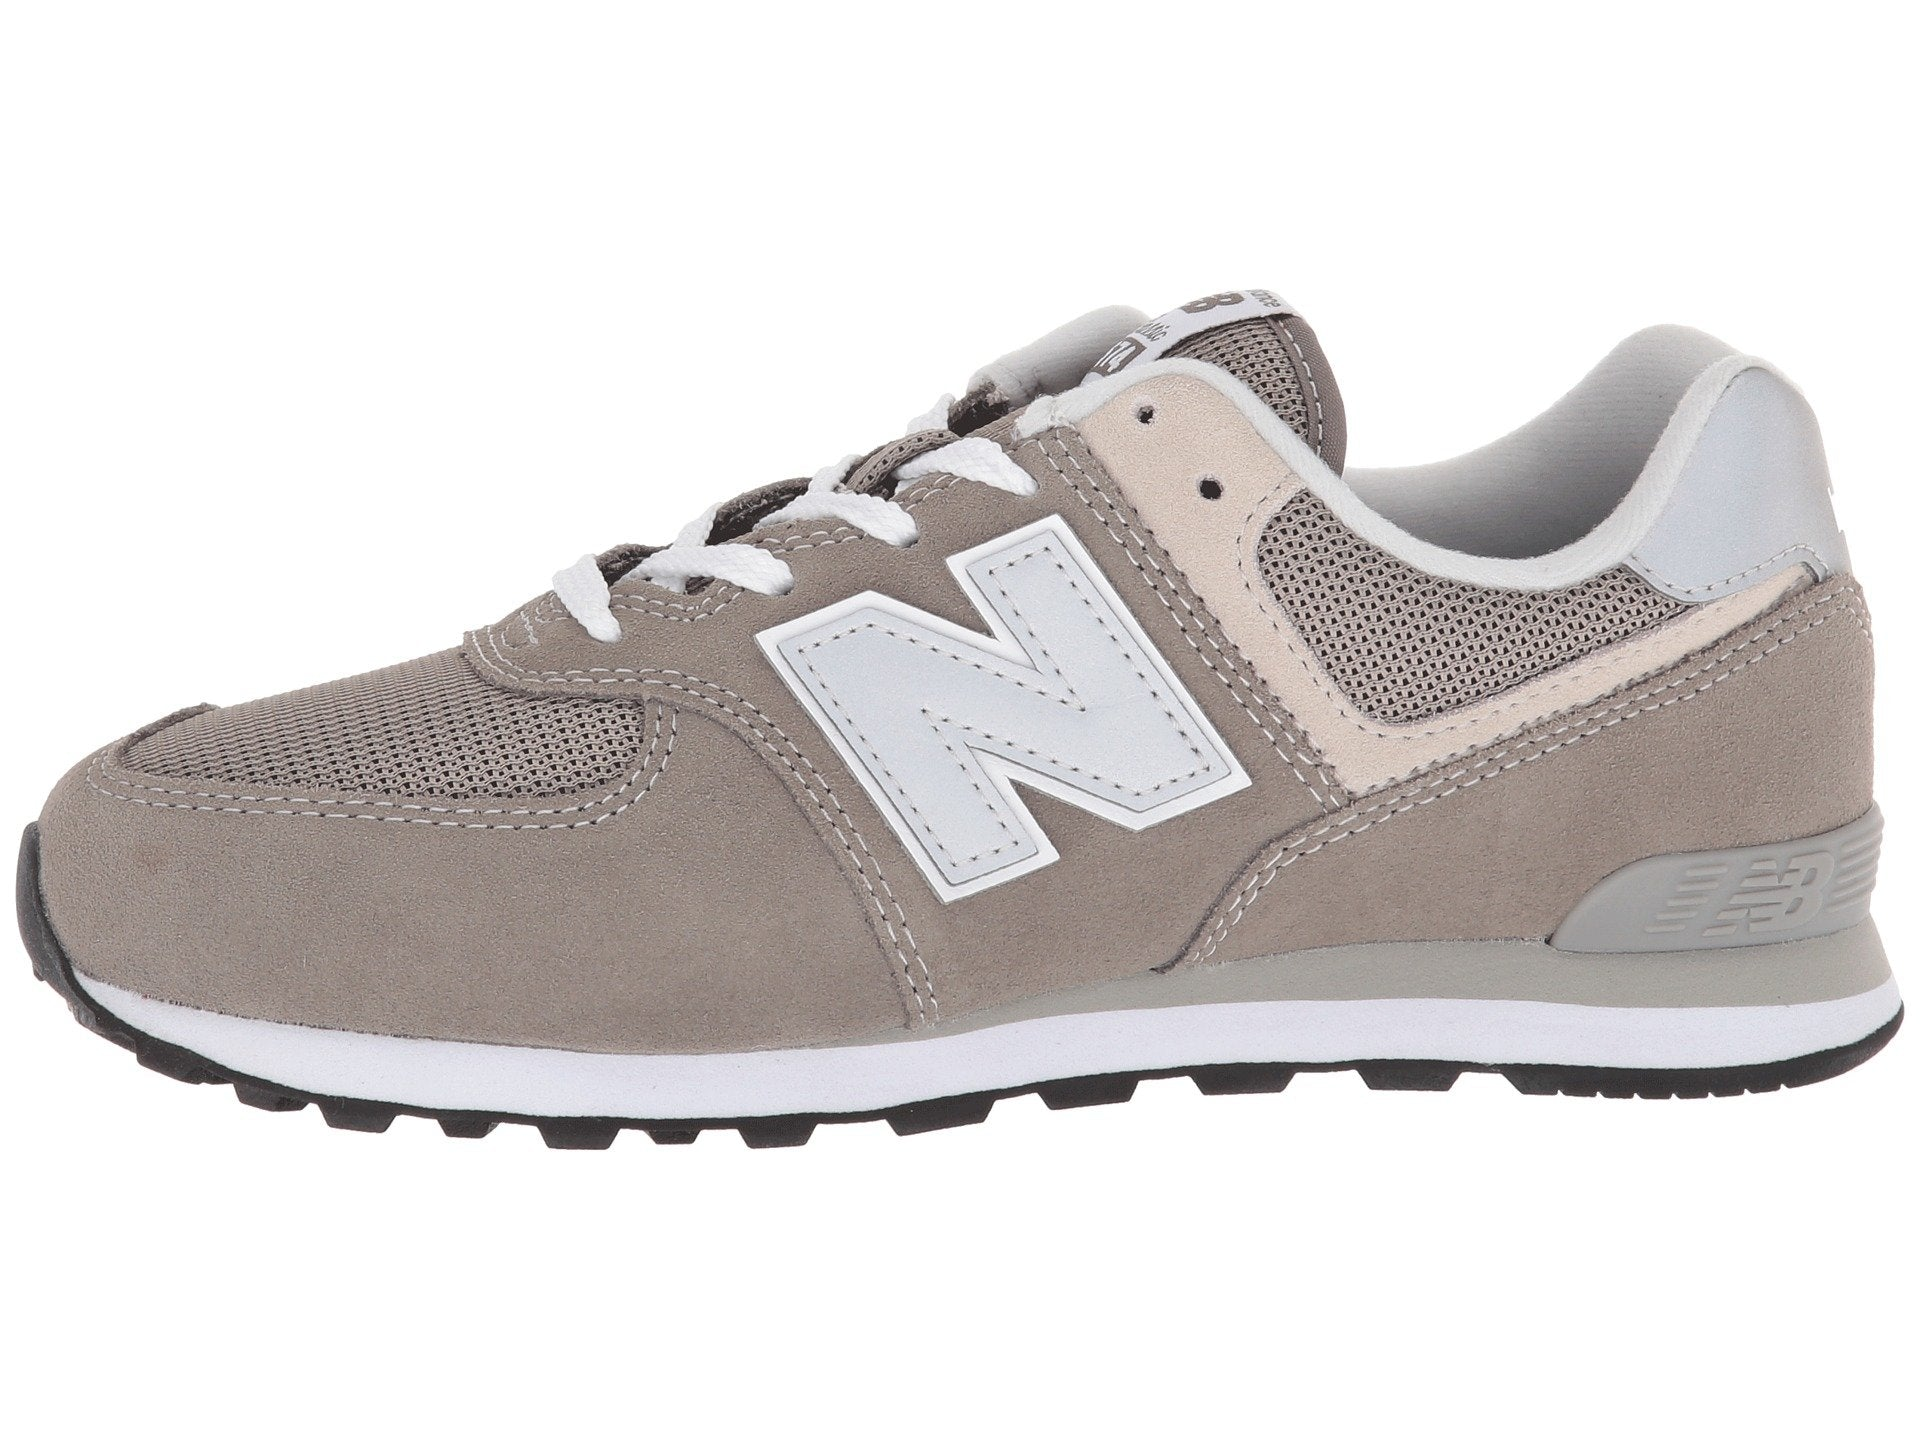 New Balance 574 White/Grey Big Kids Shoes